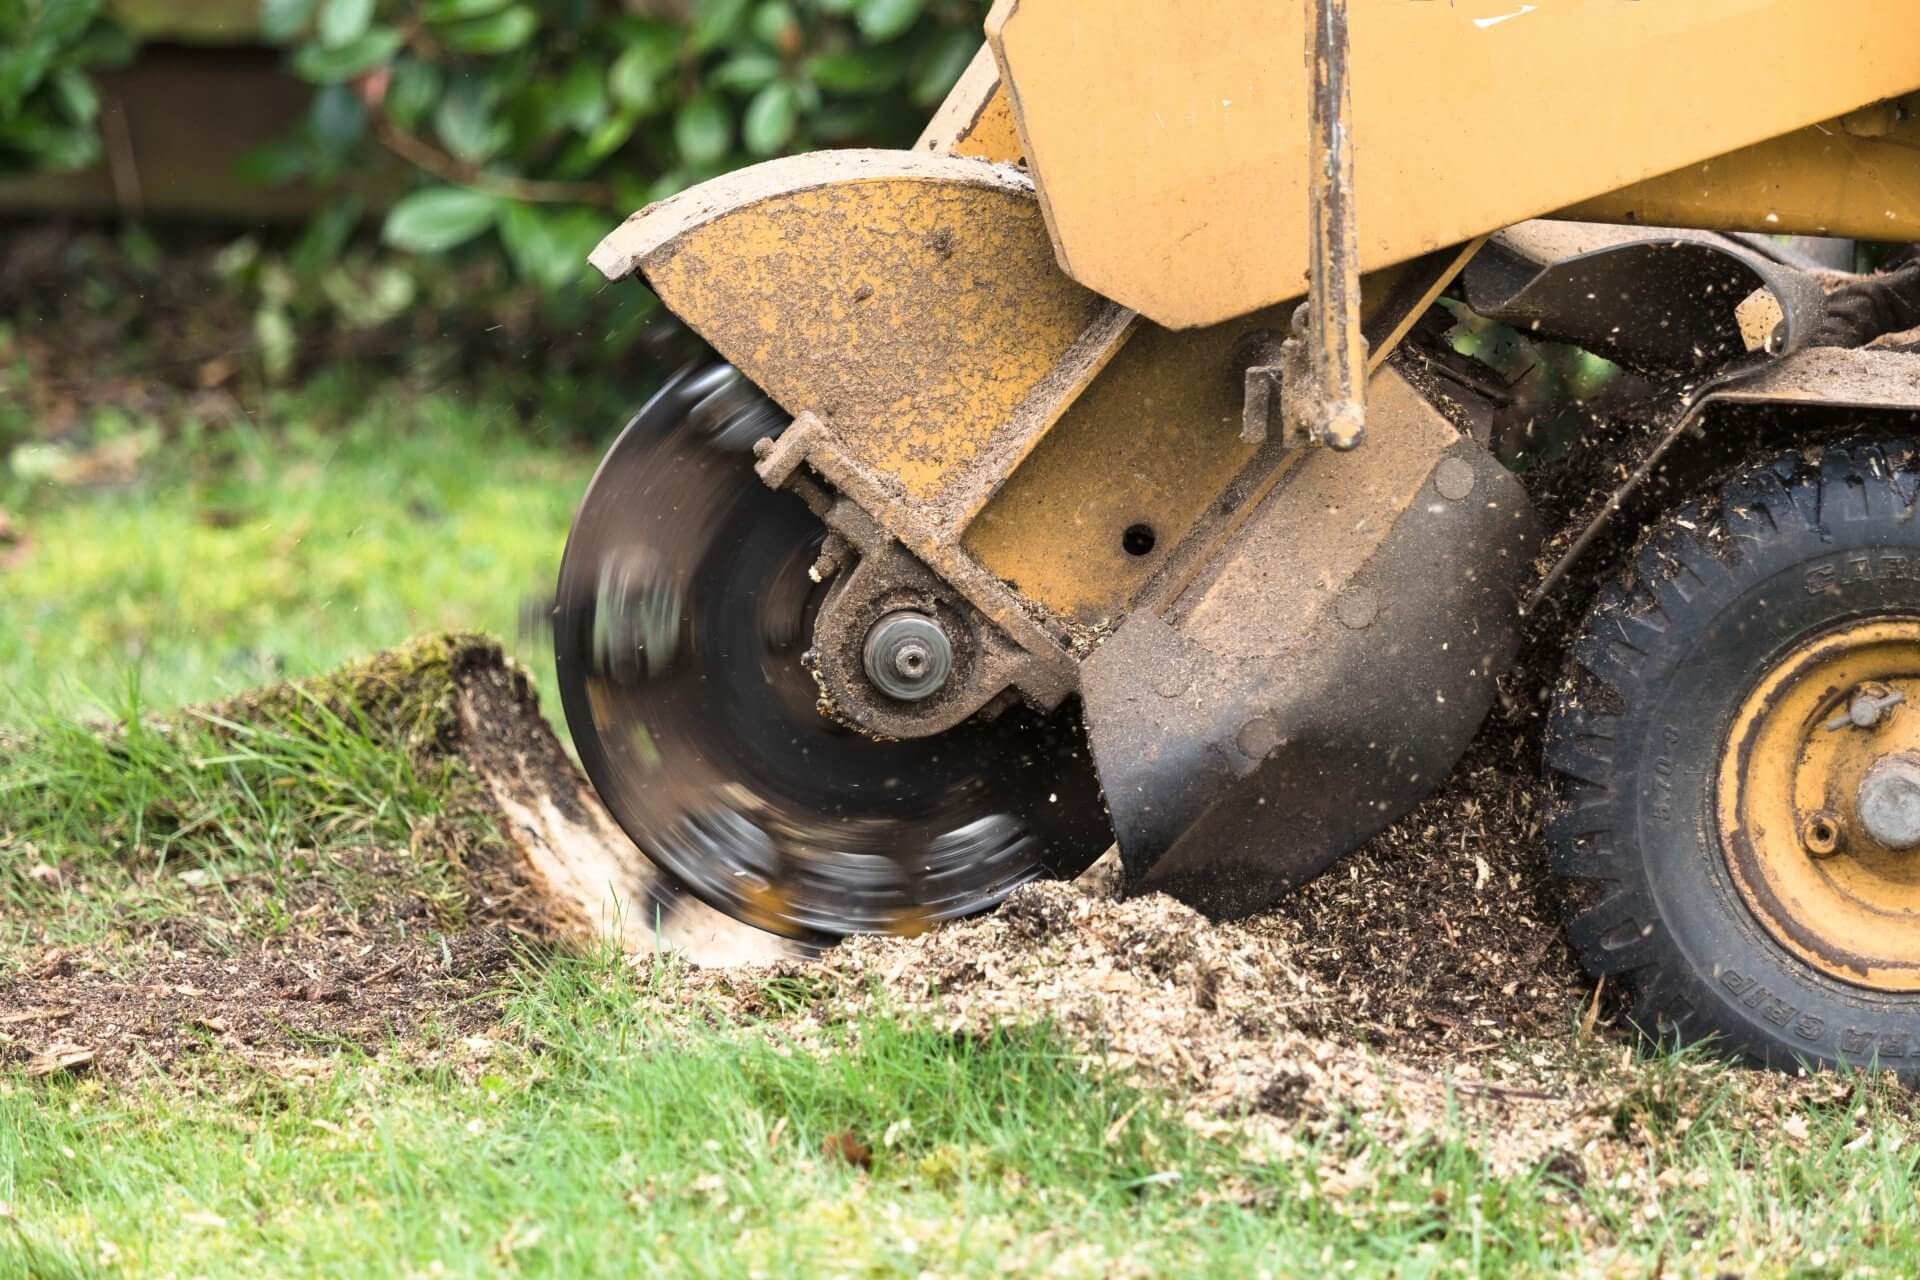 Stump Grinding-Daytona Beach's Best Tree Trimming and Tree Removal Services-We Offer Tree Trimming Services, Tree Removal, Tree Pruning, Tree Cutting, Residential and Commercial Tree Trimming Services, Storm Damage, Emergency Tree Removal, Land Clearing, Tree Companies, Tree Care Service, Stump Grinding, and we're the Best Tree Trimming Company Near You Guaranteed!